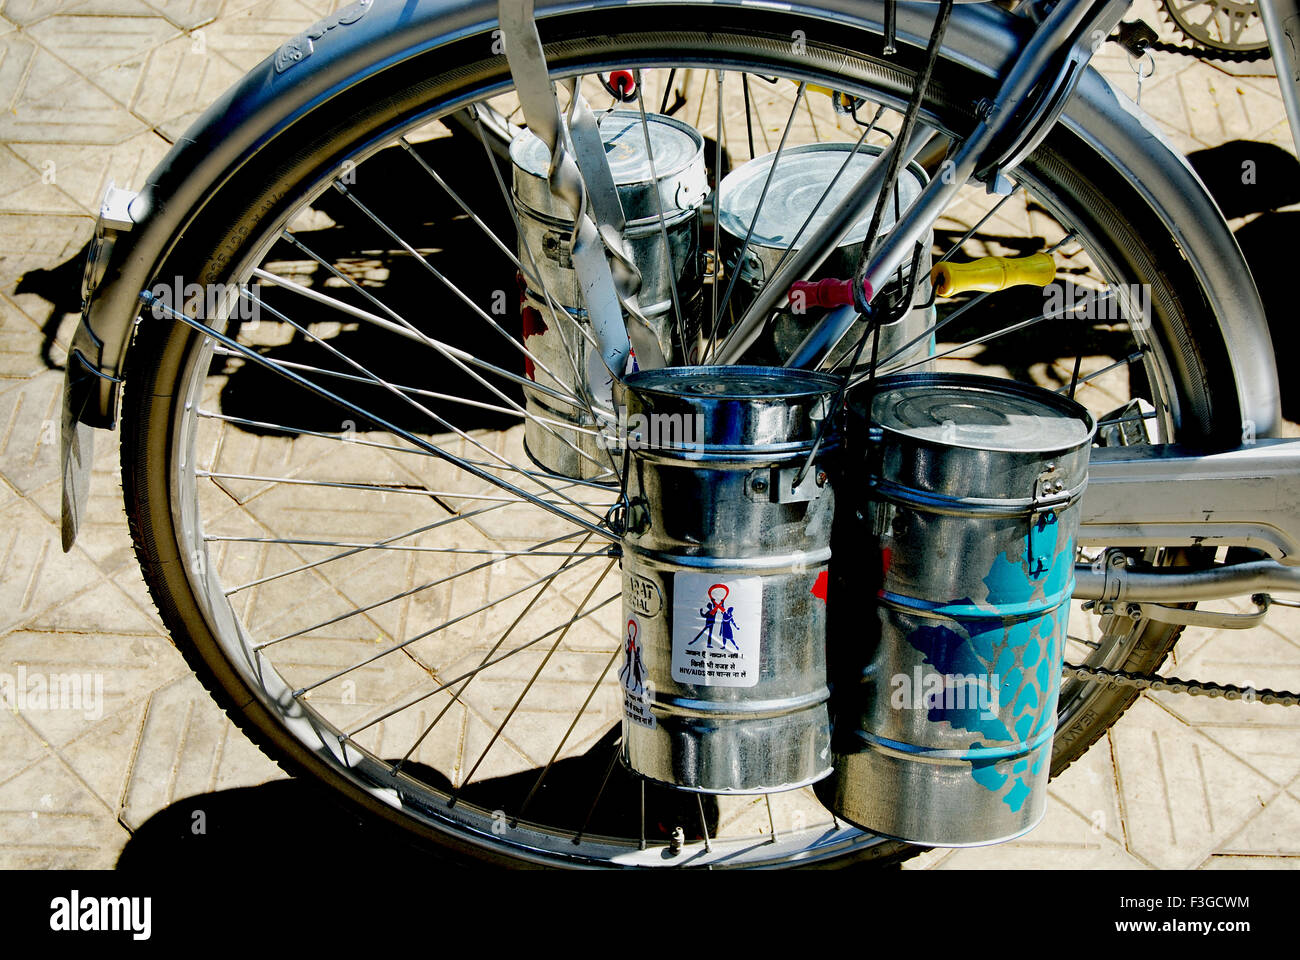 Food dabbas tied to rear wheel of cycle - Stock Image